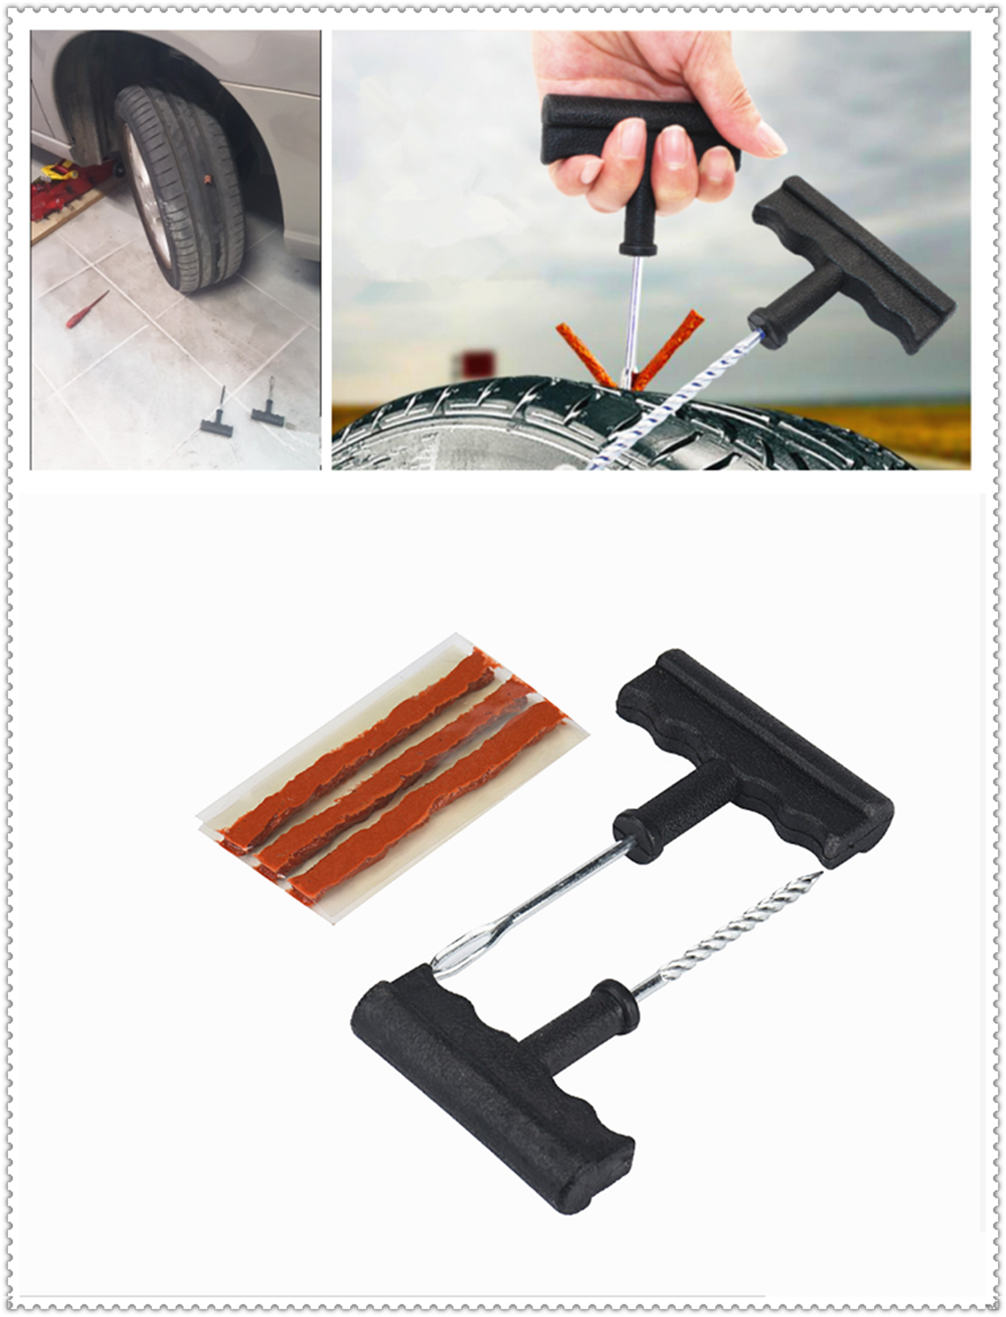 Car and motorcycle tubeless tire repair tool puncture tube for Lexus IS350 GS430 RX400h RX330 IS250 ES330